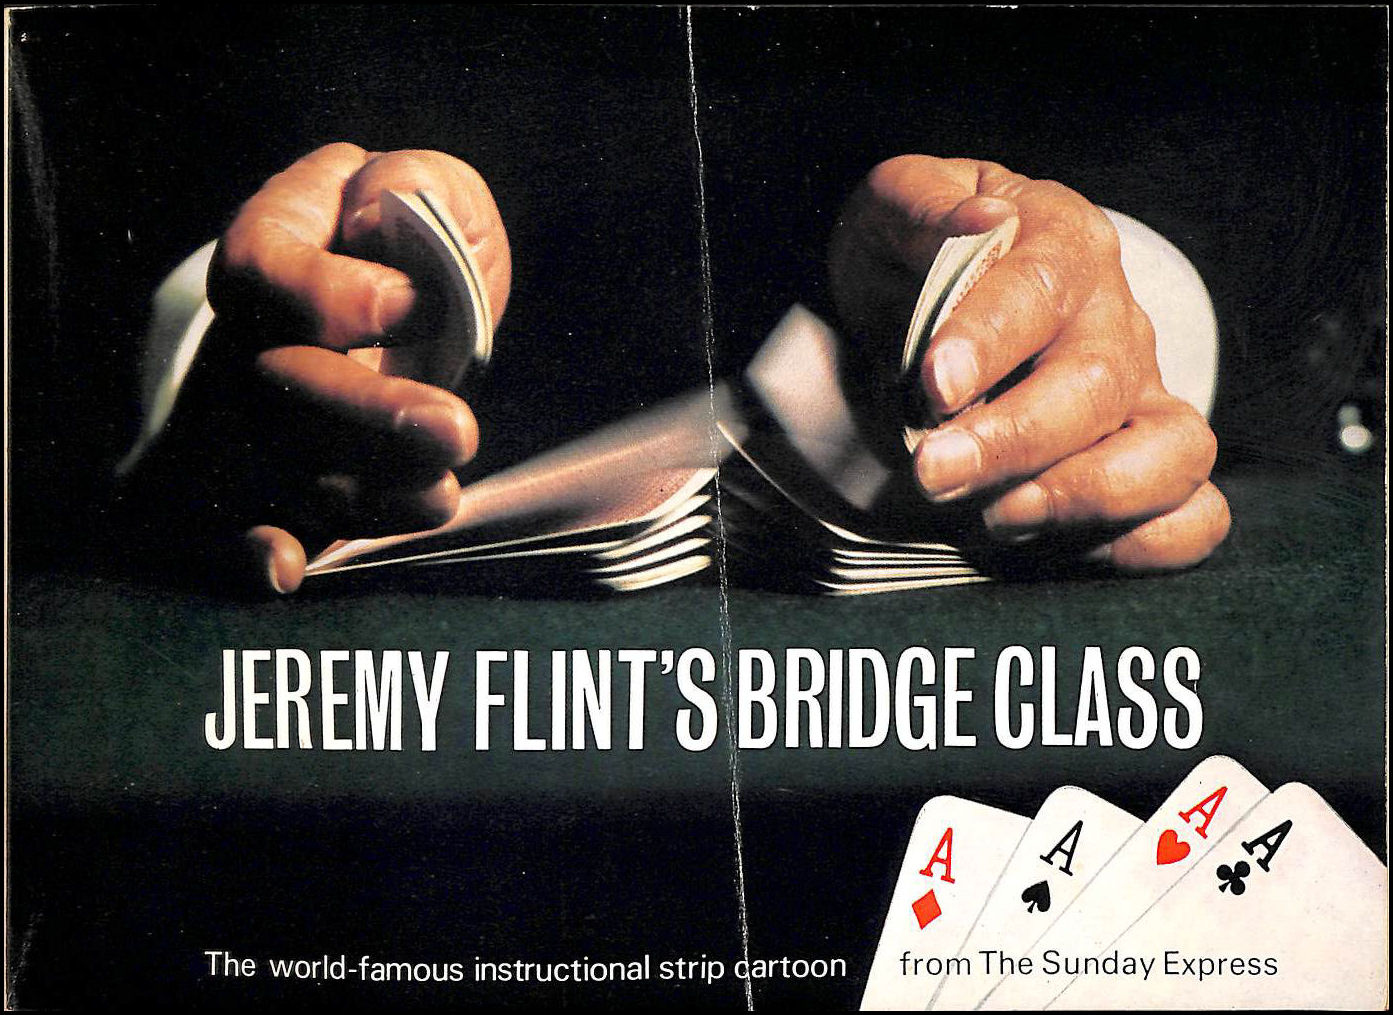 Image for JEREMY FLINT's BRIDGE CLASS